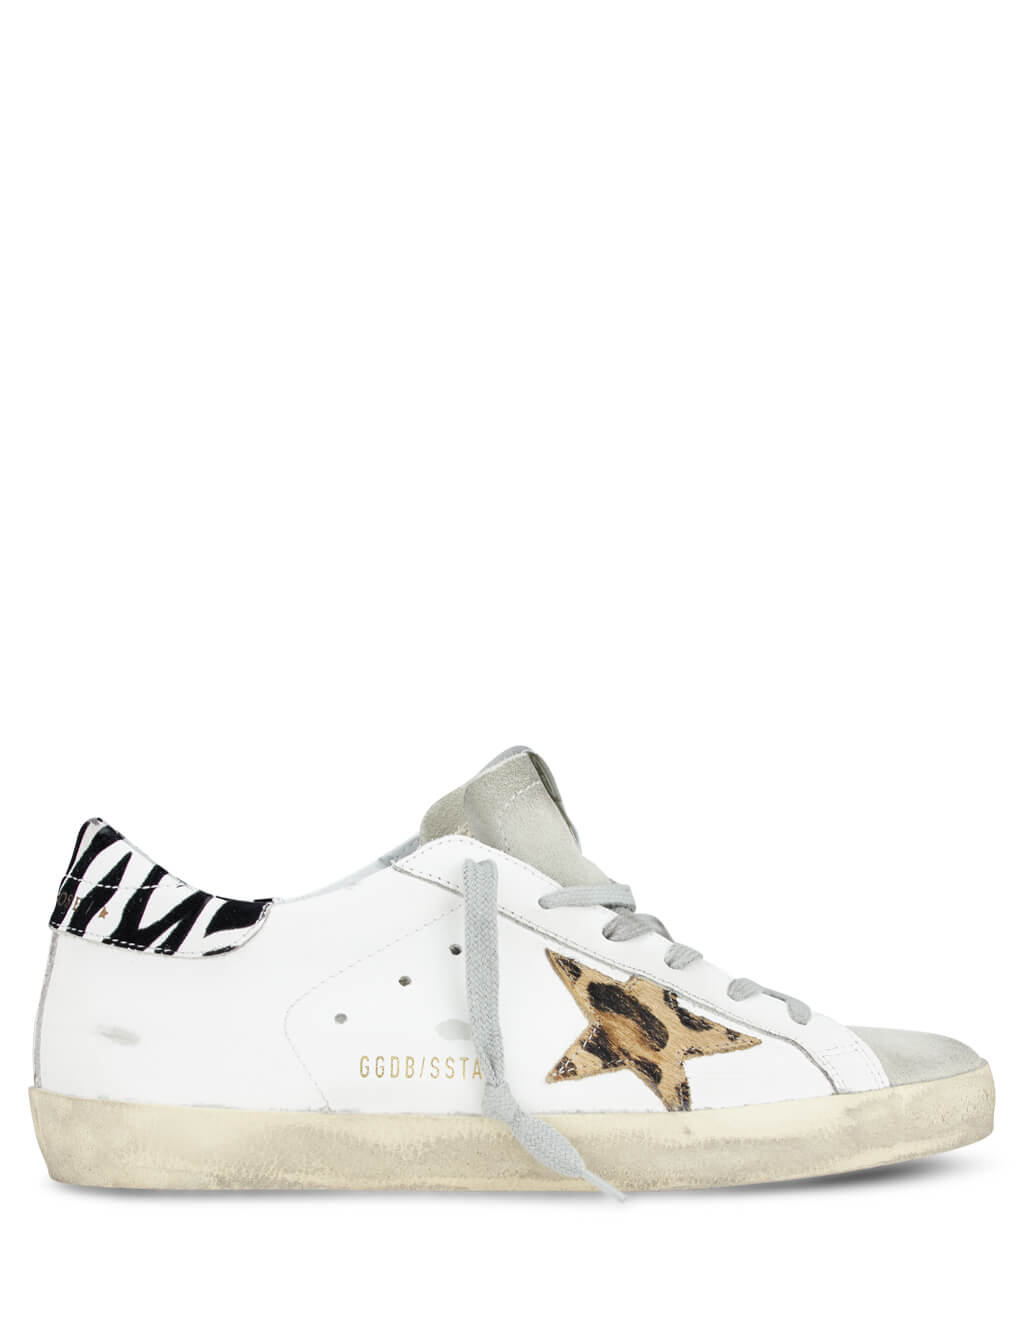 Golden Goose Deluxe Brand Women's White Superstar Sneakers with Pony Leopard Star and Zigger Details G36WS590.T94